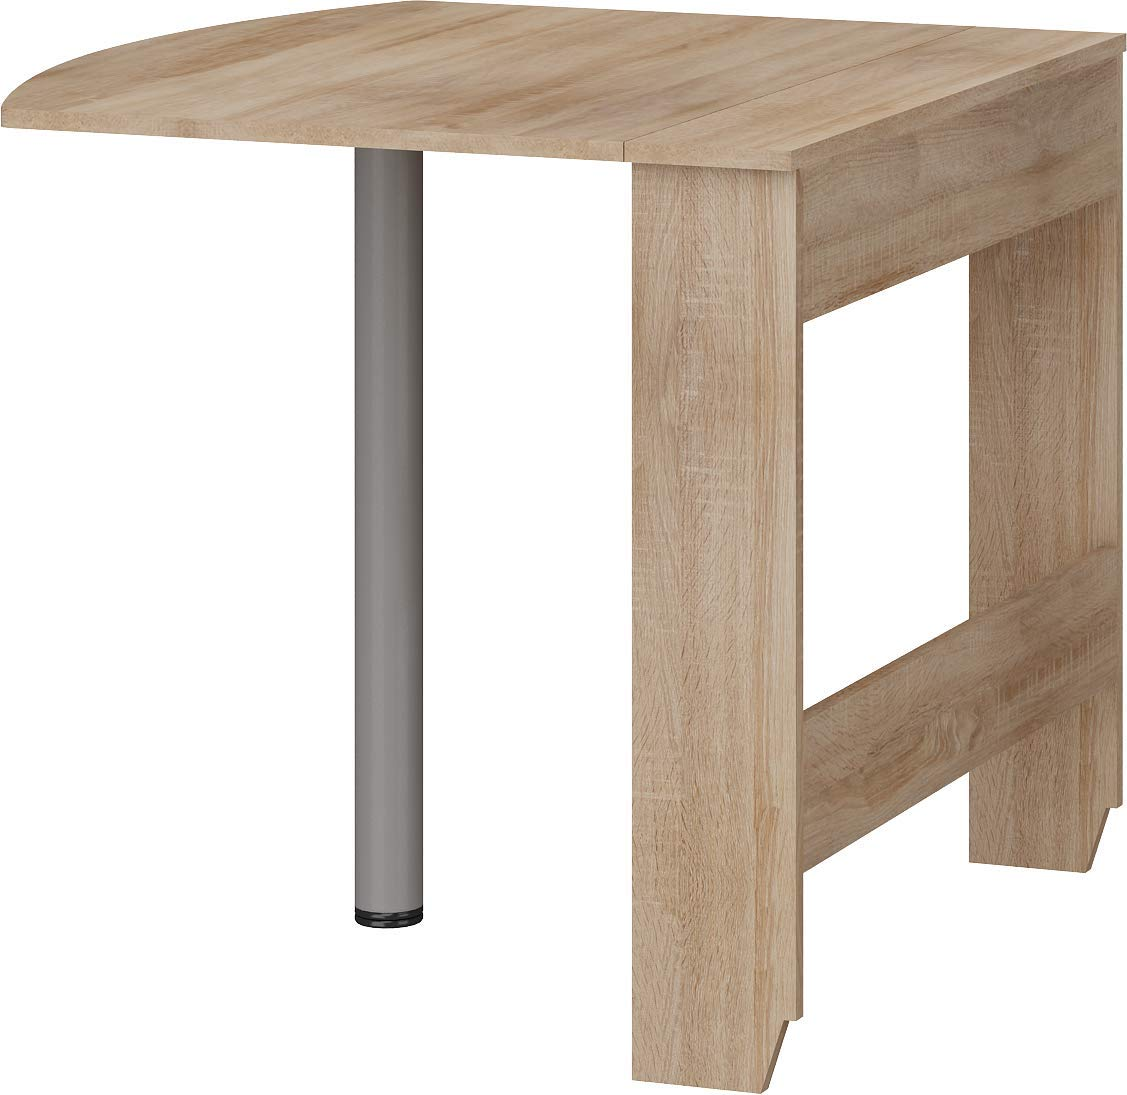 Furniture.Agency Expert A Compact Drop Leaf Dining Table Smart Solutions for Small Spaces Sonoma Oak by Furniture.Agency